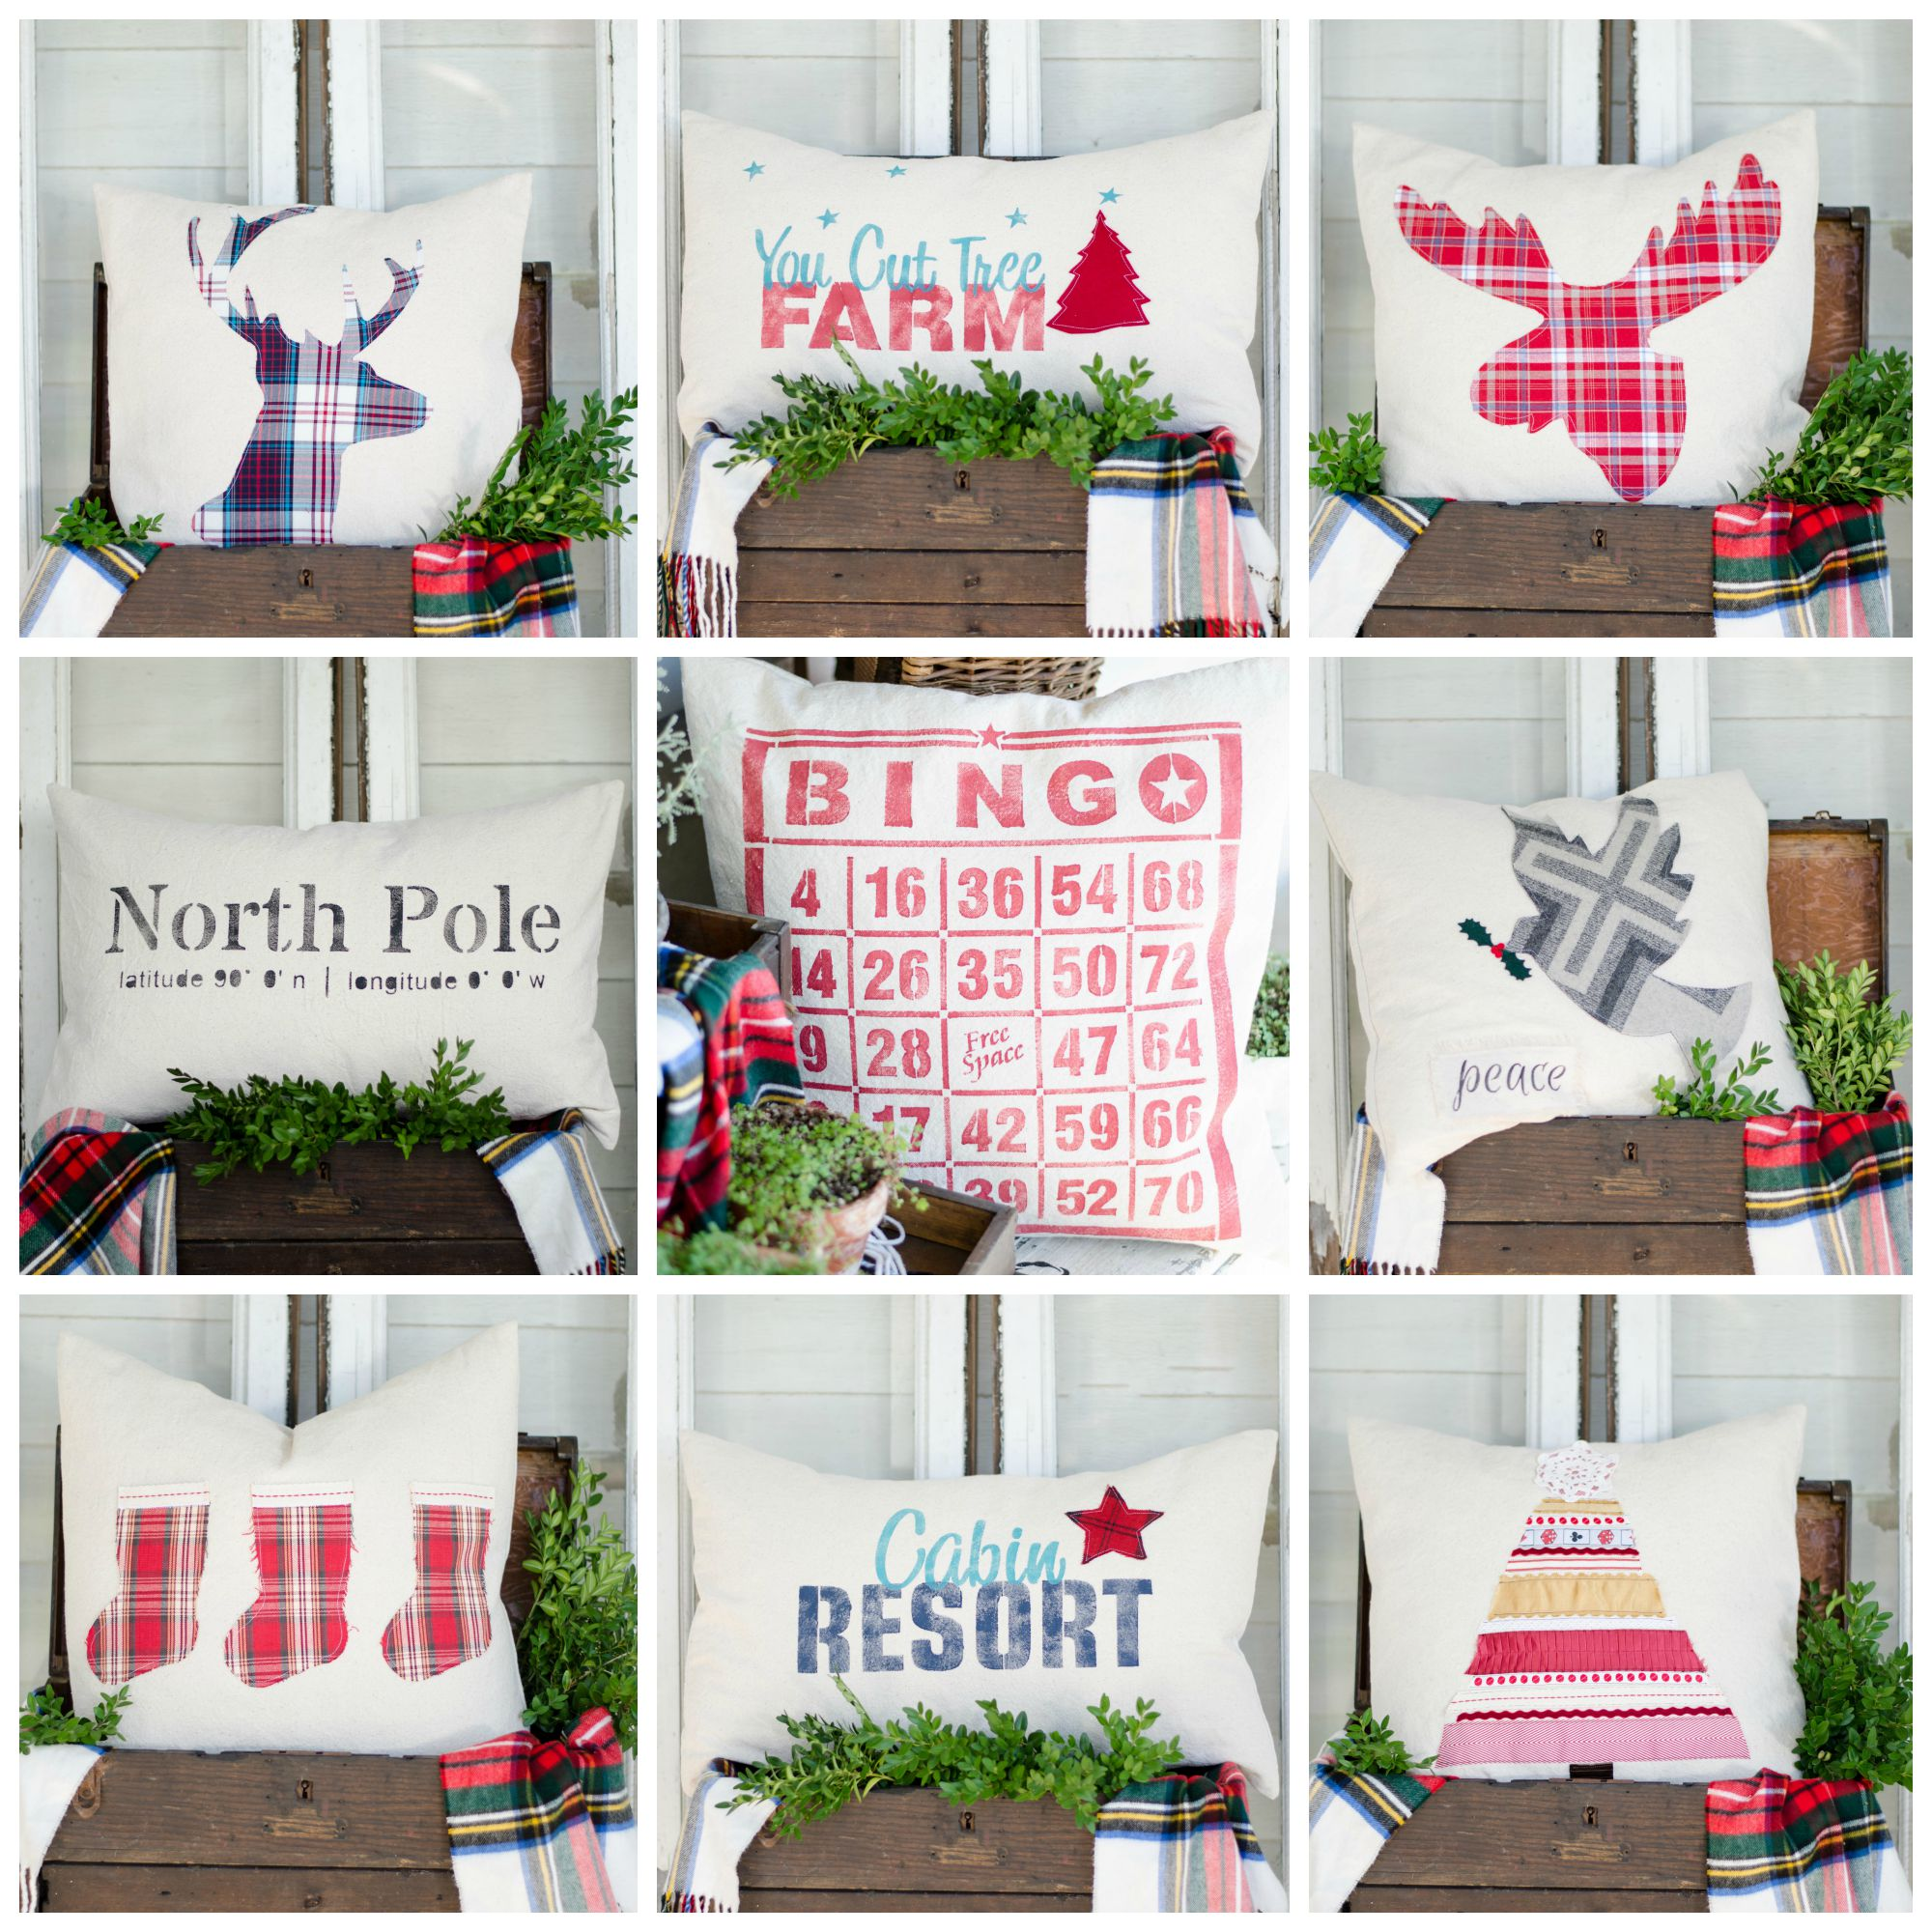 christmas pillows available for wholsale purchase by business owners - Christmas Wholesale